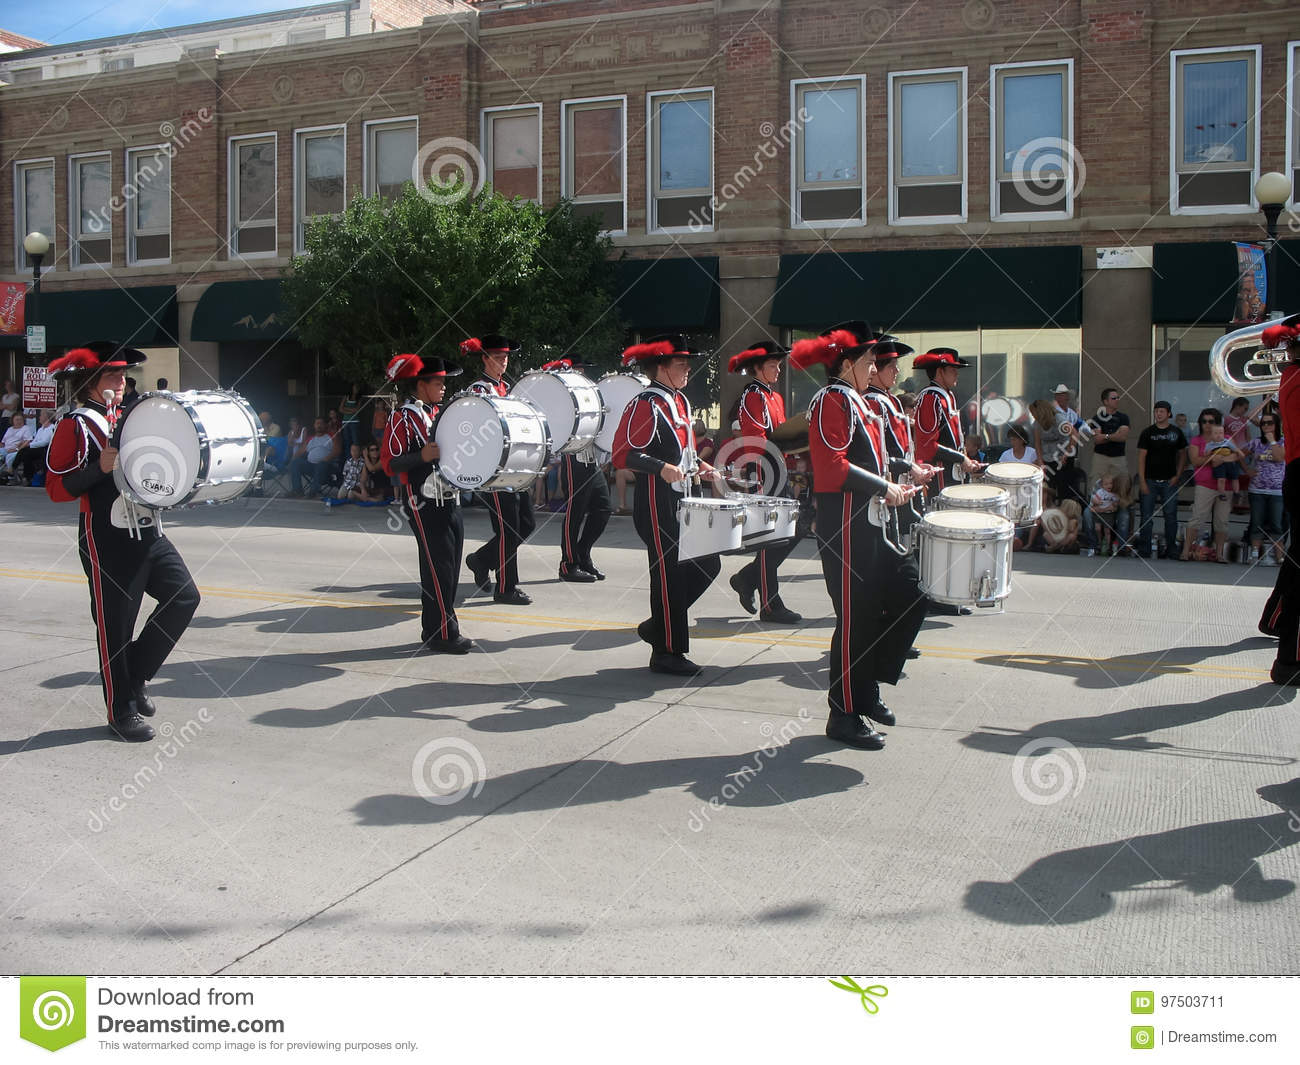 Cheyenne, Wyoming, USA - July 27, 2010: Parade in downtown Cheyenne, Wyoming, during the Frontier Days annual